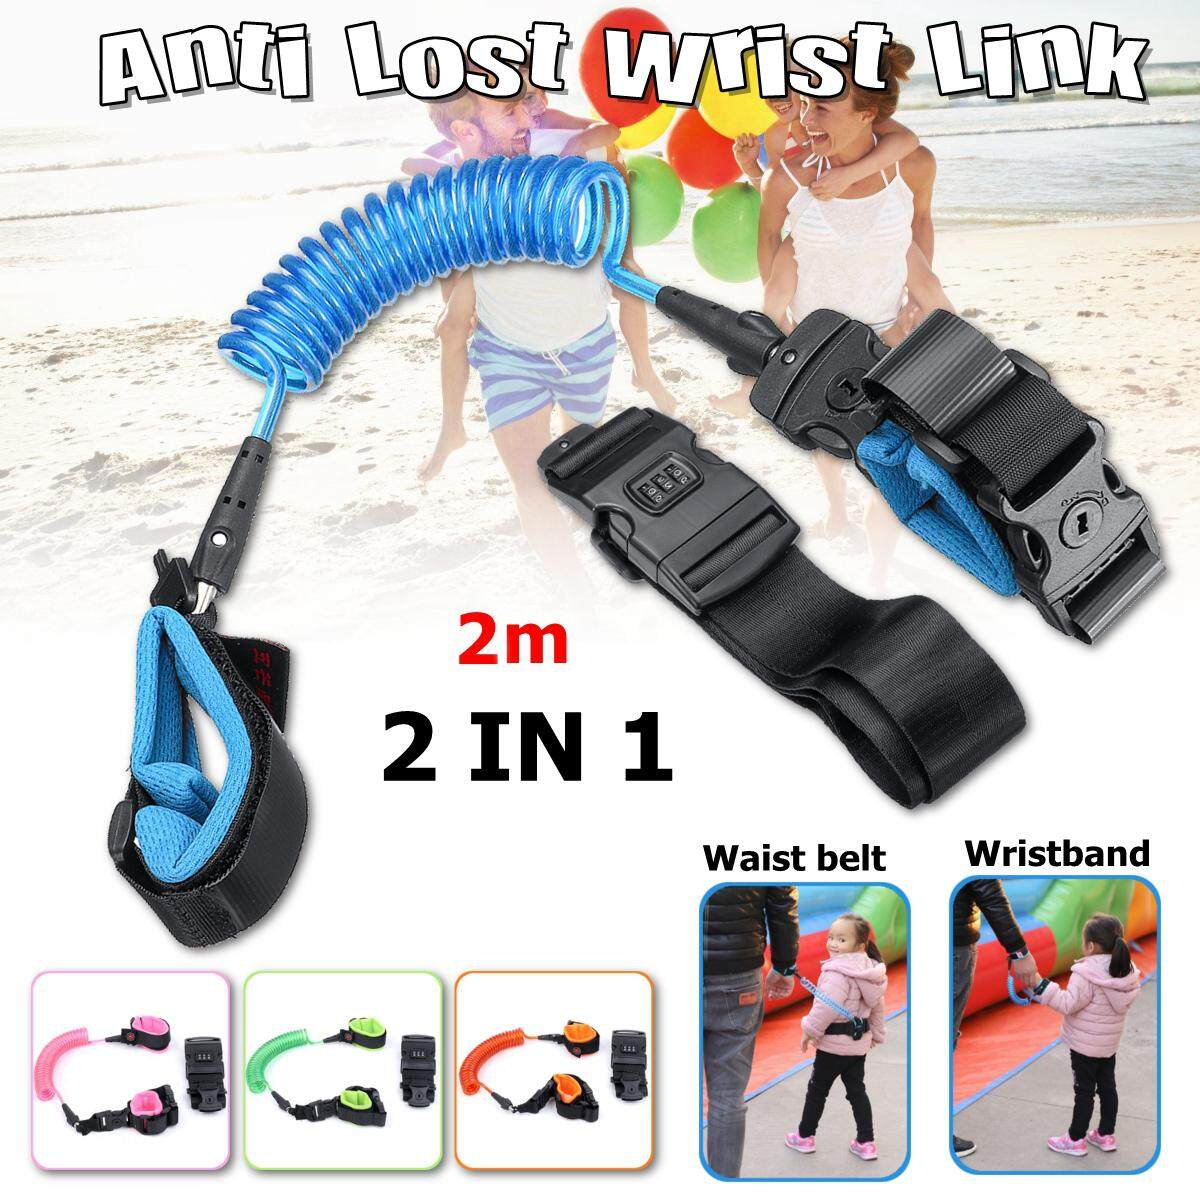 Pink/&Green Children Anti-lost 1.5m Rope Safety Toddler Harness Reflective Belt Child Restraint Leash Kids Anti-lost Wrist Link Baby Traction With Lock /& Key For Travel Outdoor